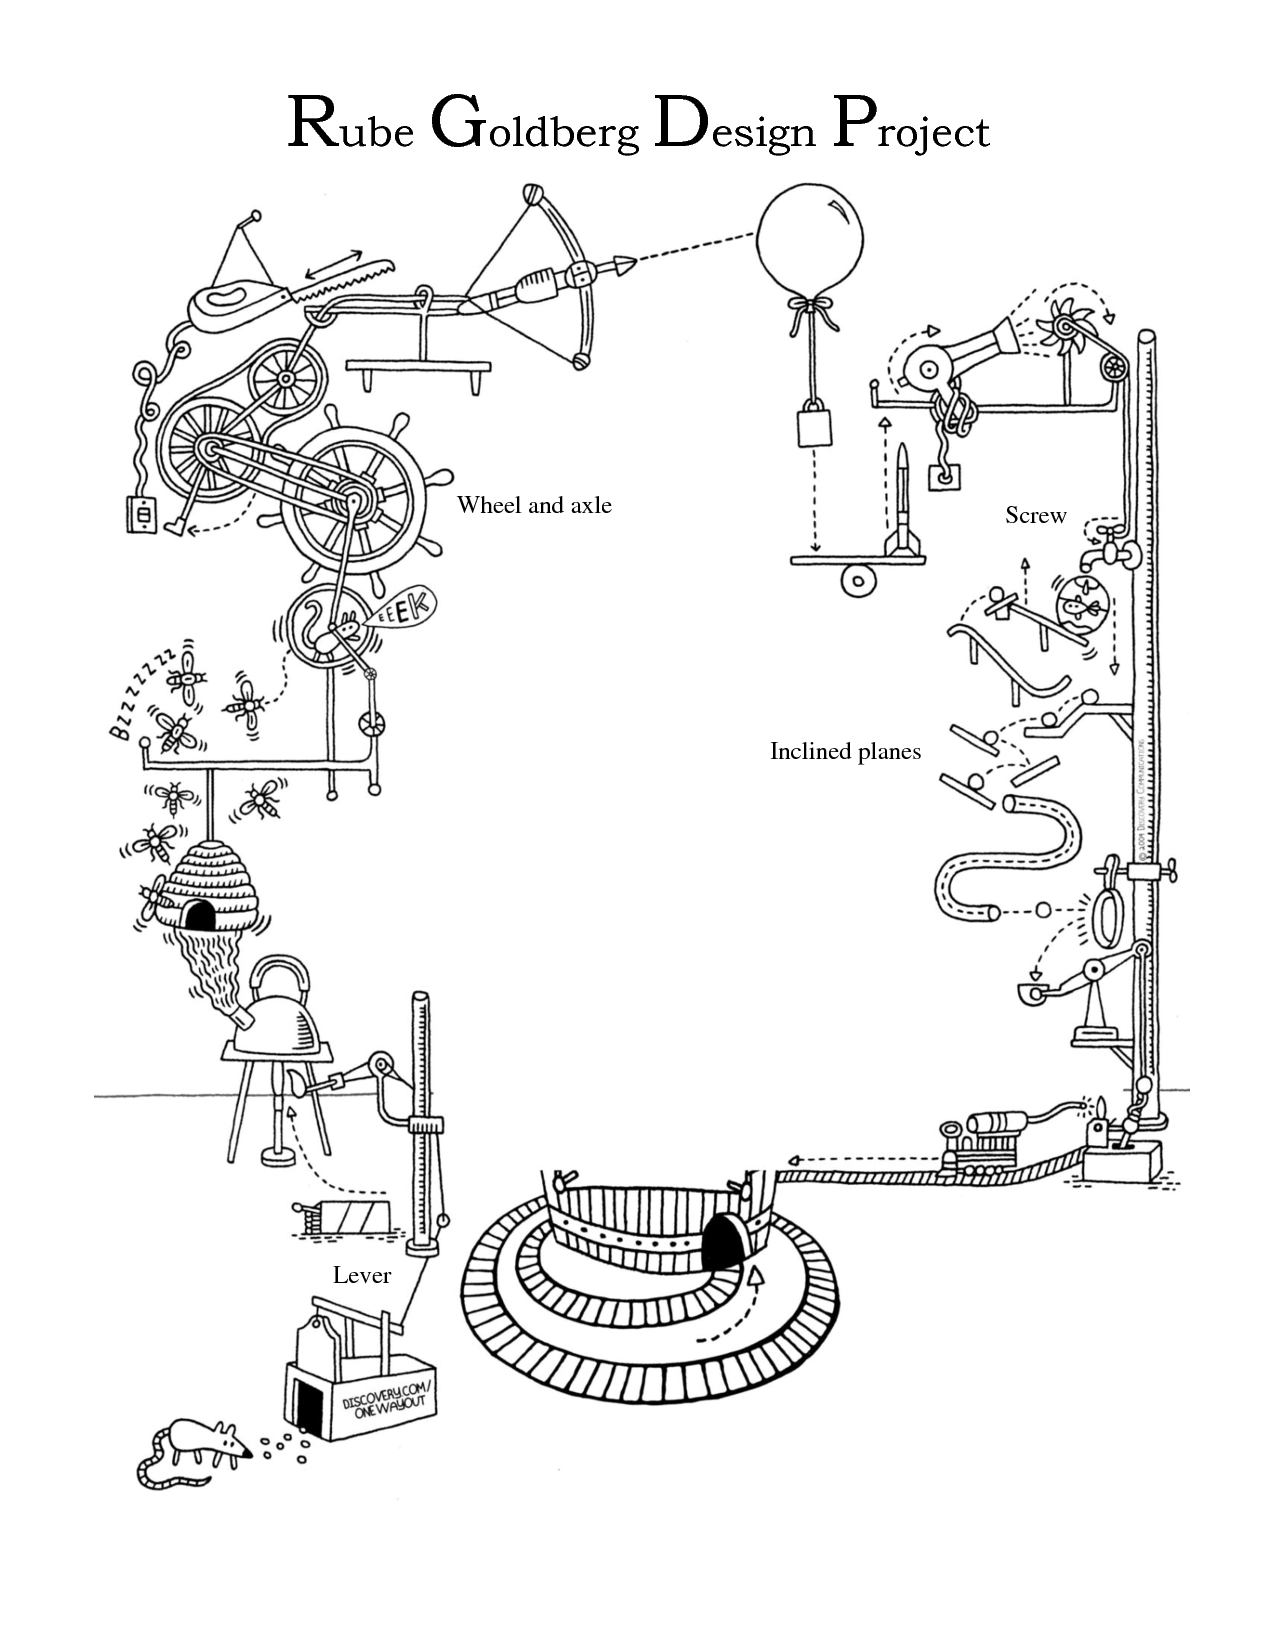 Design And Sketch Your Own Rube Goldberg Cartoon Using A Variety Of Simple Machines